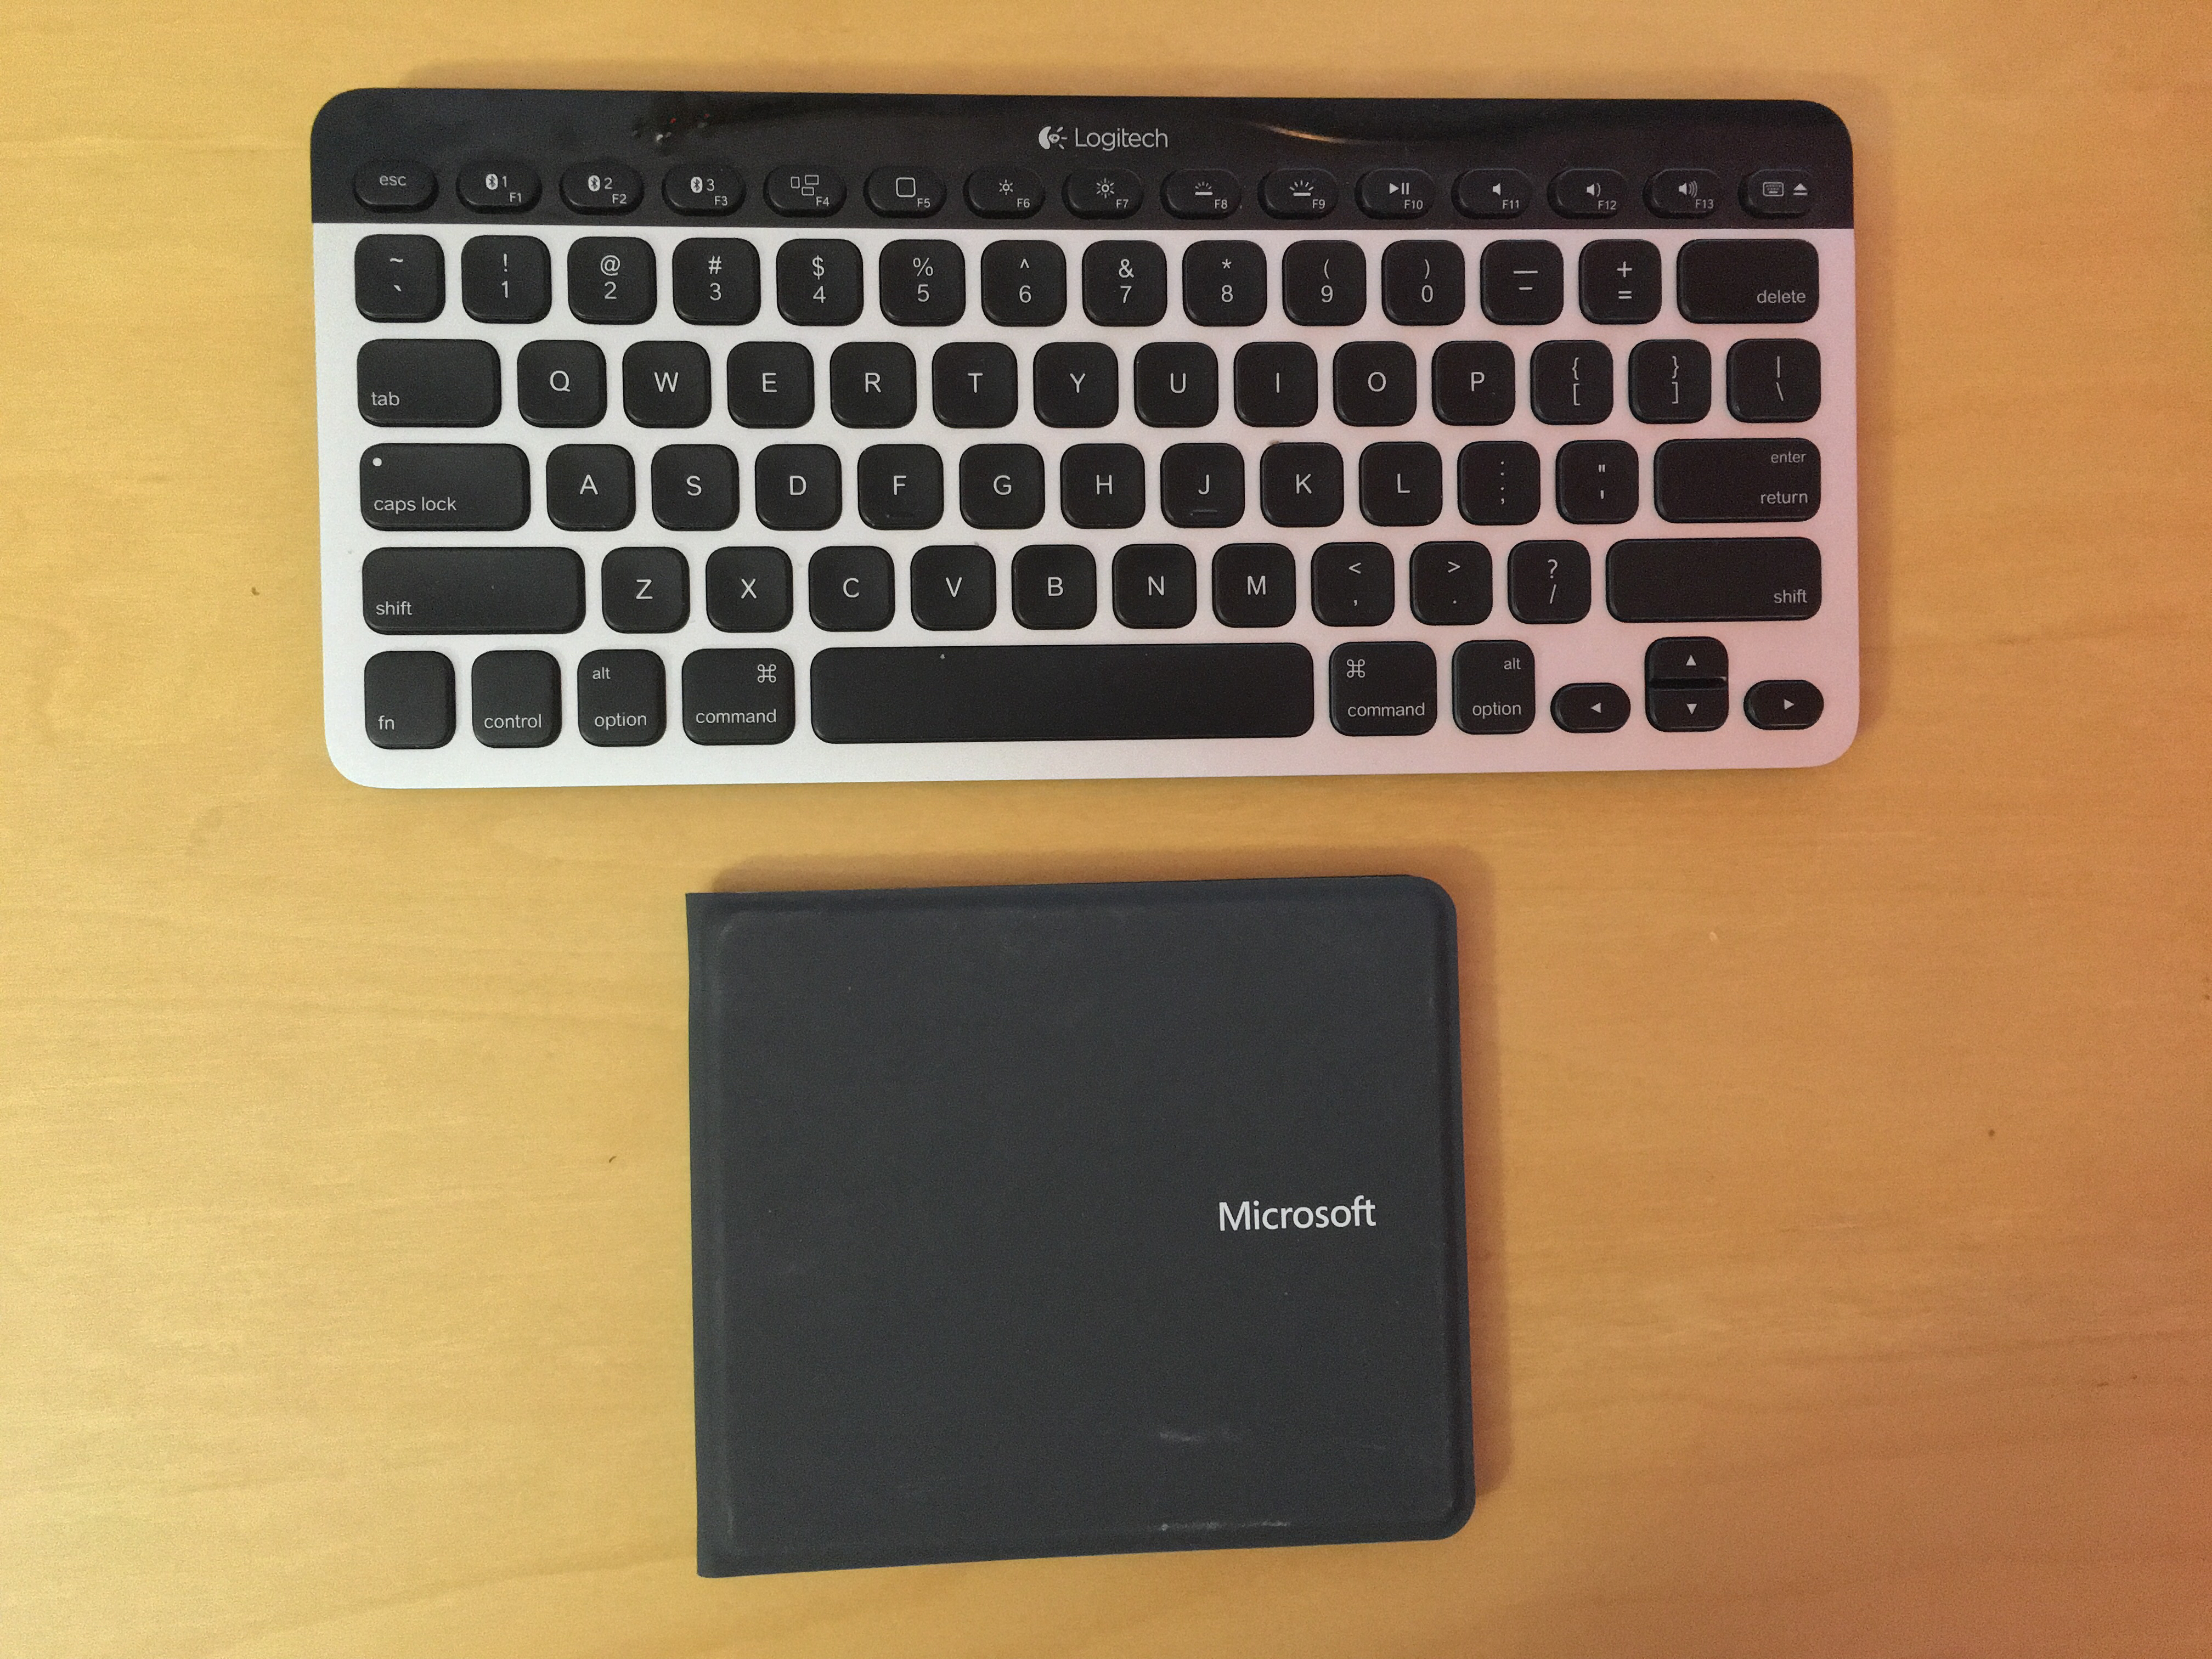 The Microsoft Universal Foldable Keyboard is half the size and a tad lighter than the Logitech K811 Easy-Switch Keyboard